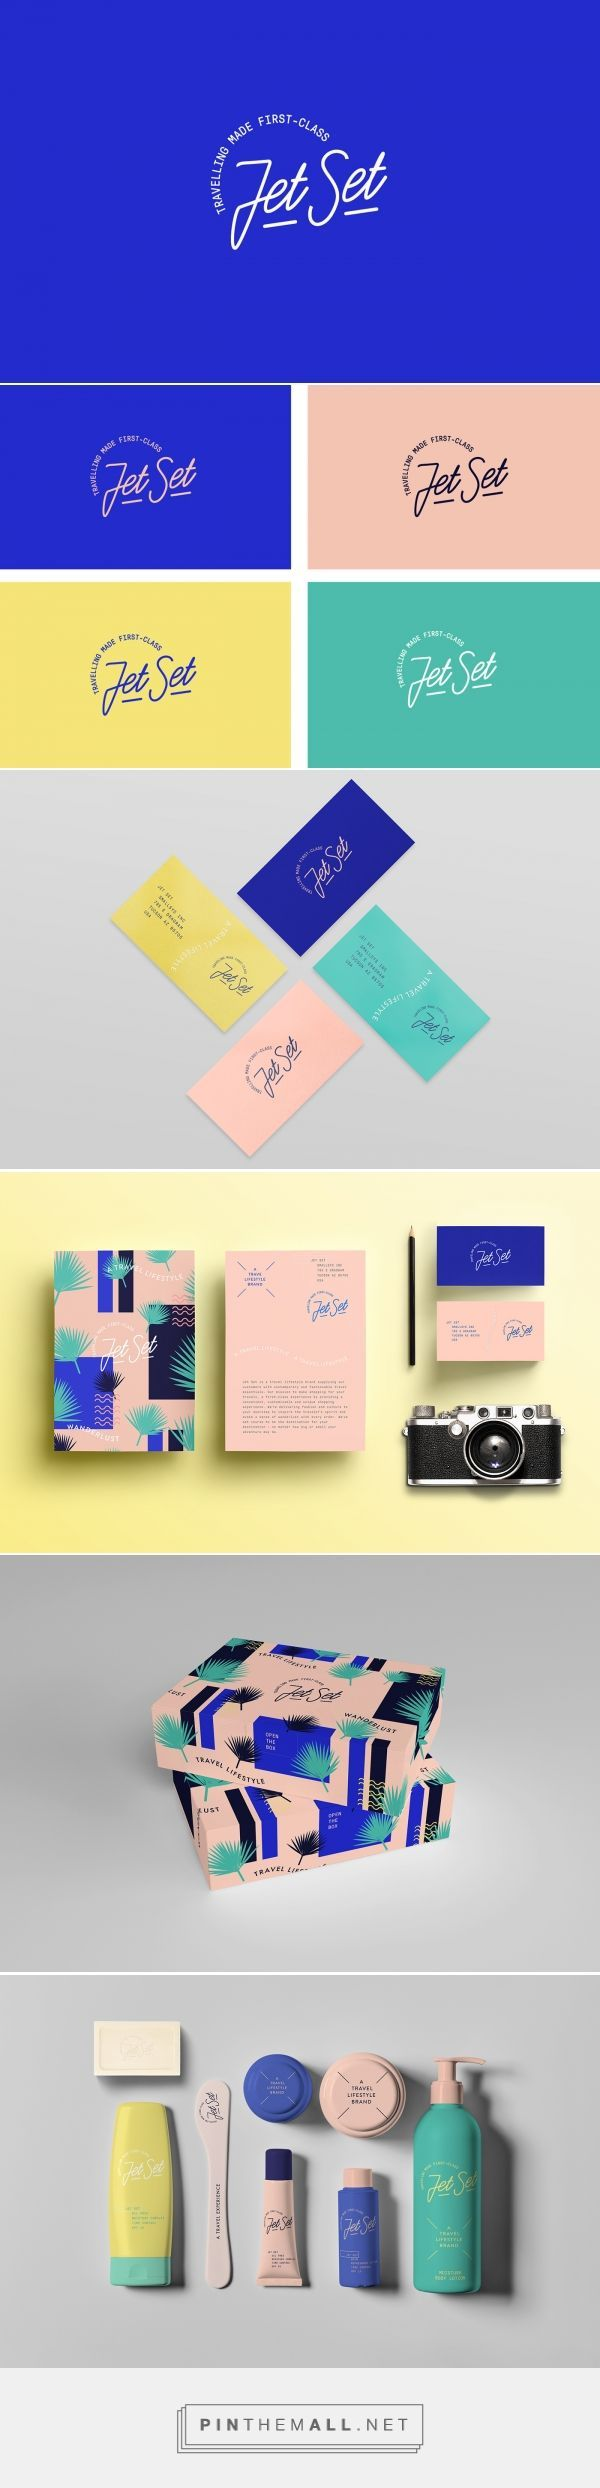 Jet Set on Behance by Bunker3022 -, Buenos Aires, Argentina curated by Packaging Diva PD. A travel kit brand which aims at young people of a certain buying level, that like to travel to exotic places but do not choose hotels for lodging, and consequently need travel kit with cosmetics.